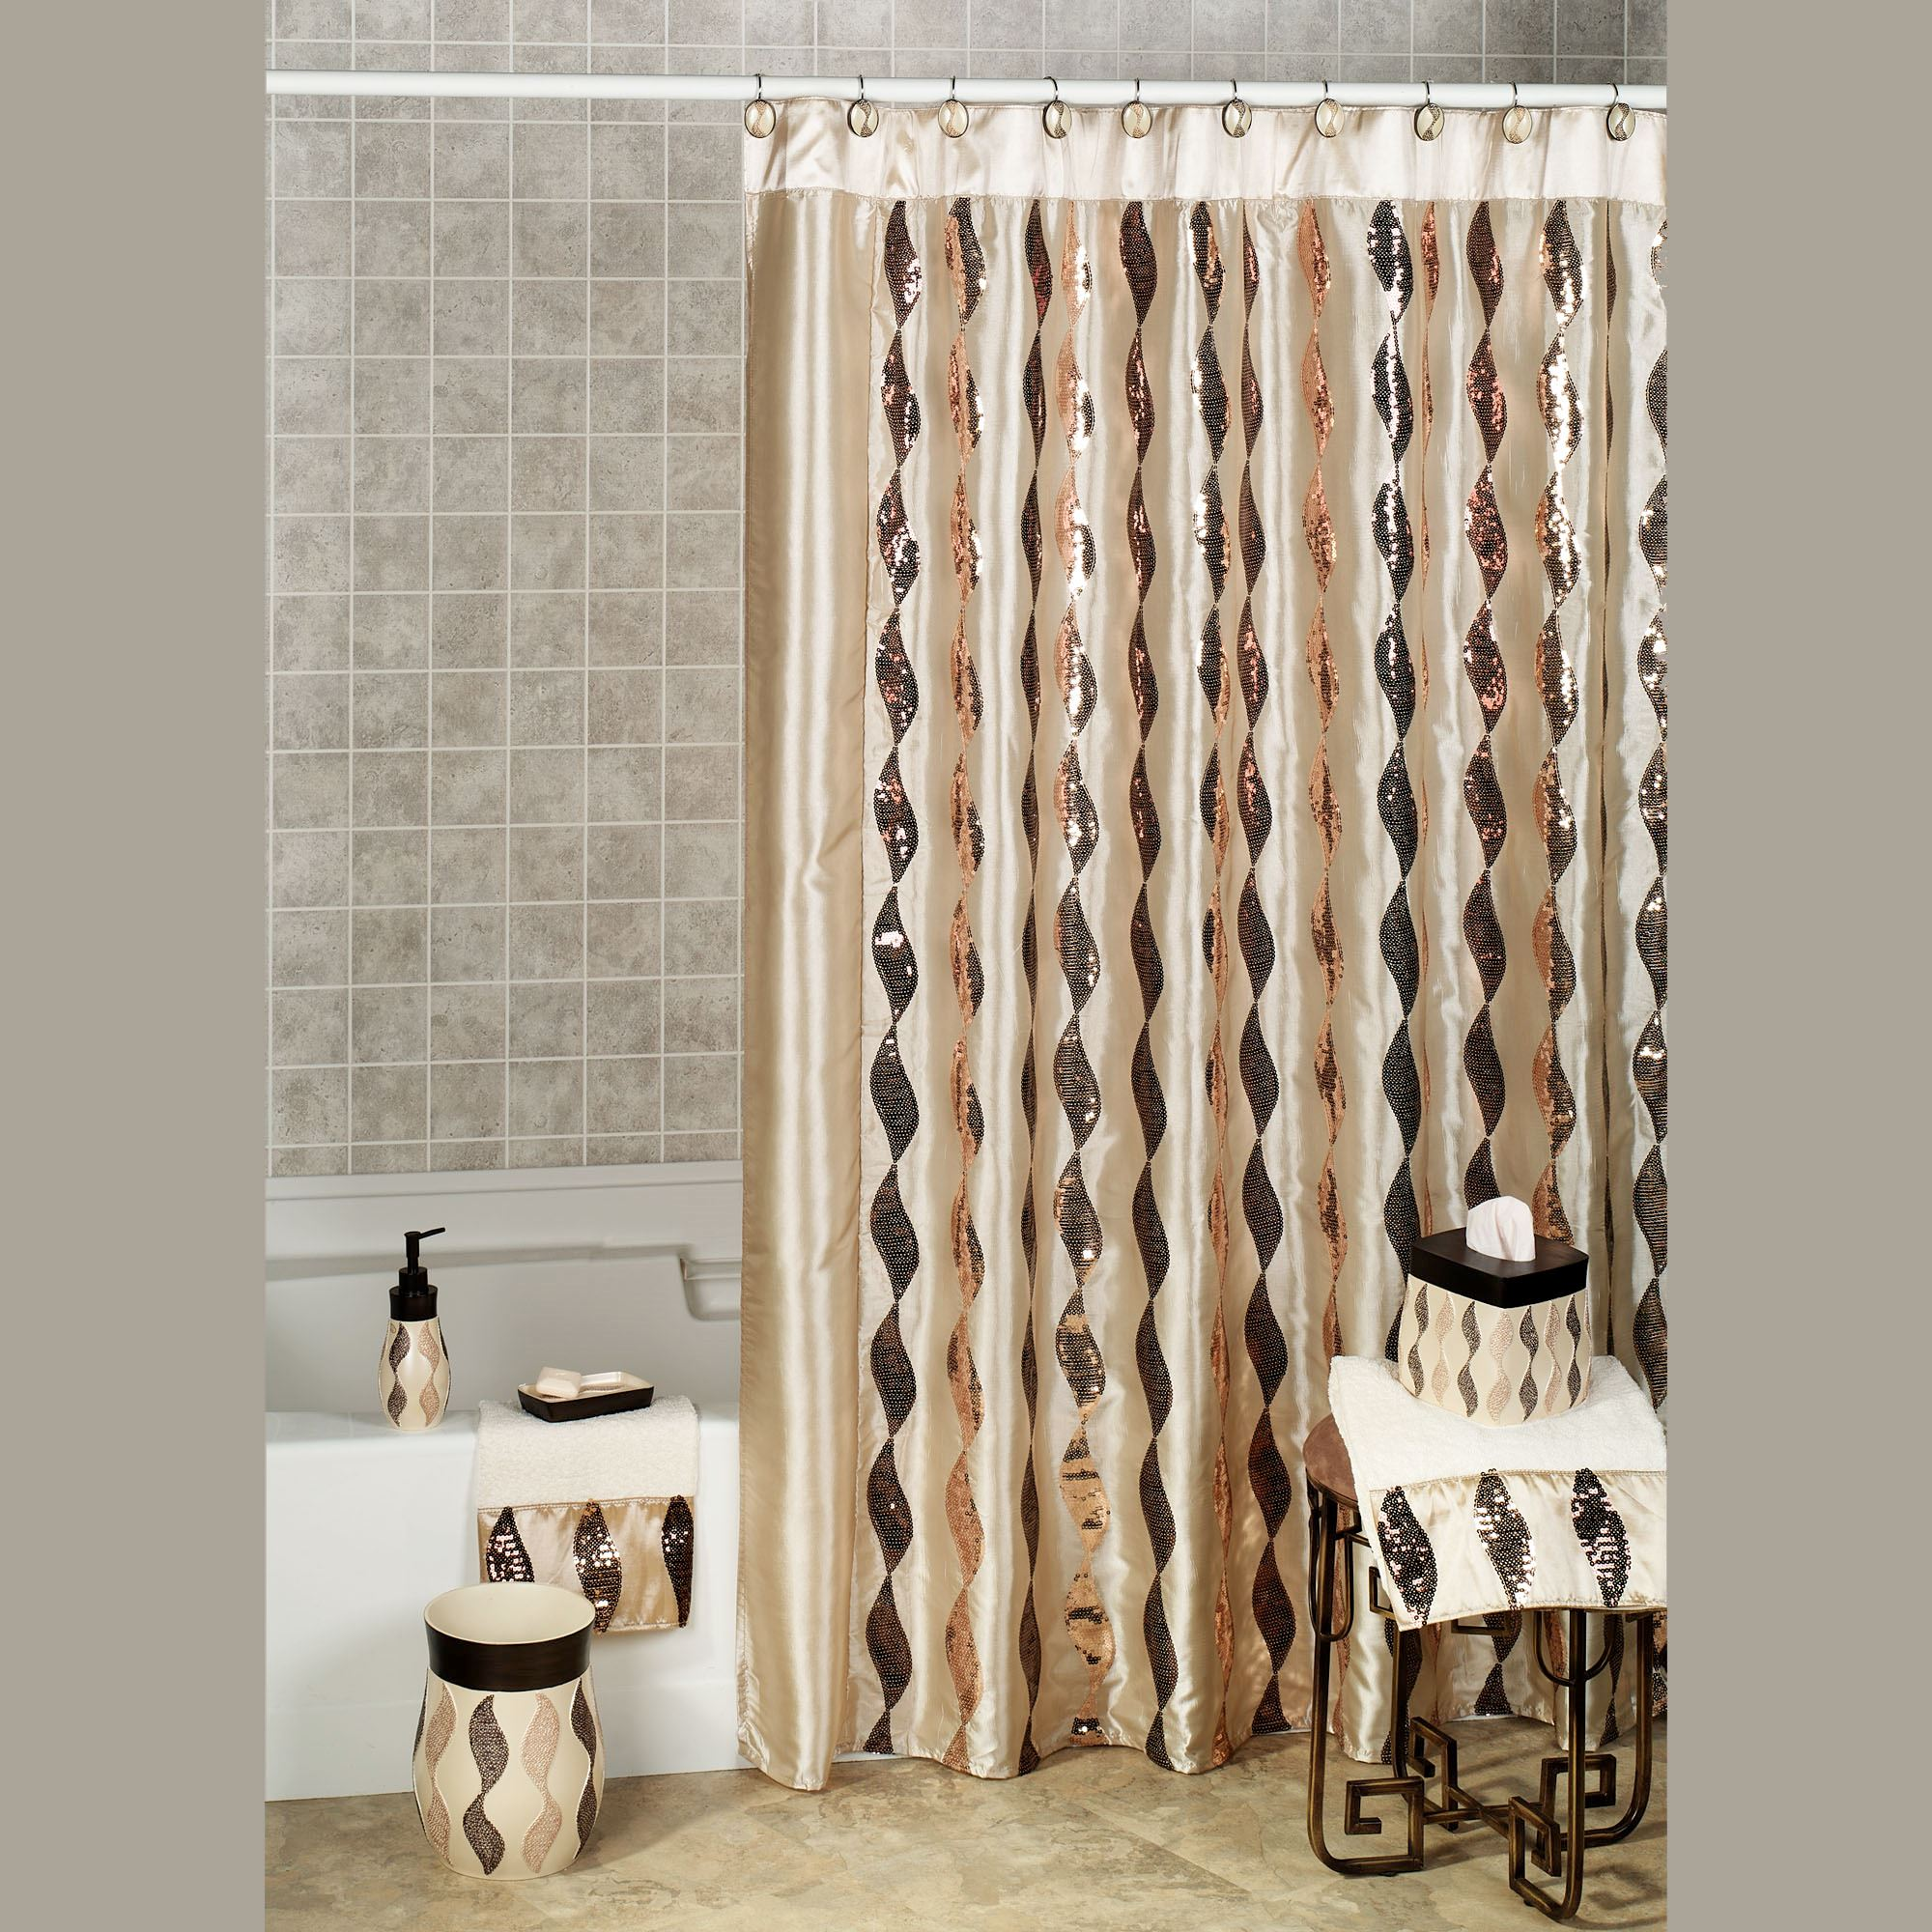 Shimmer Shower Curtain Gold 72 X Click To Expand